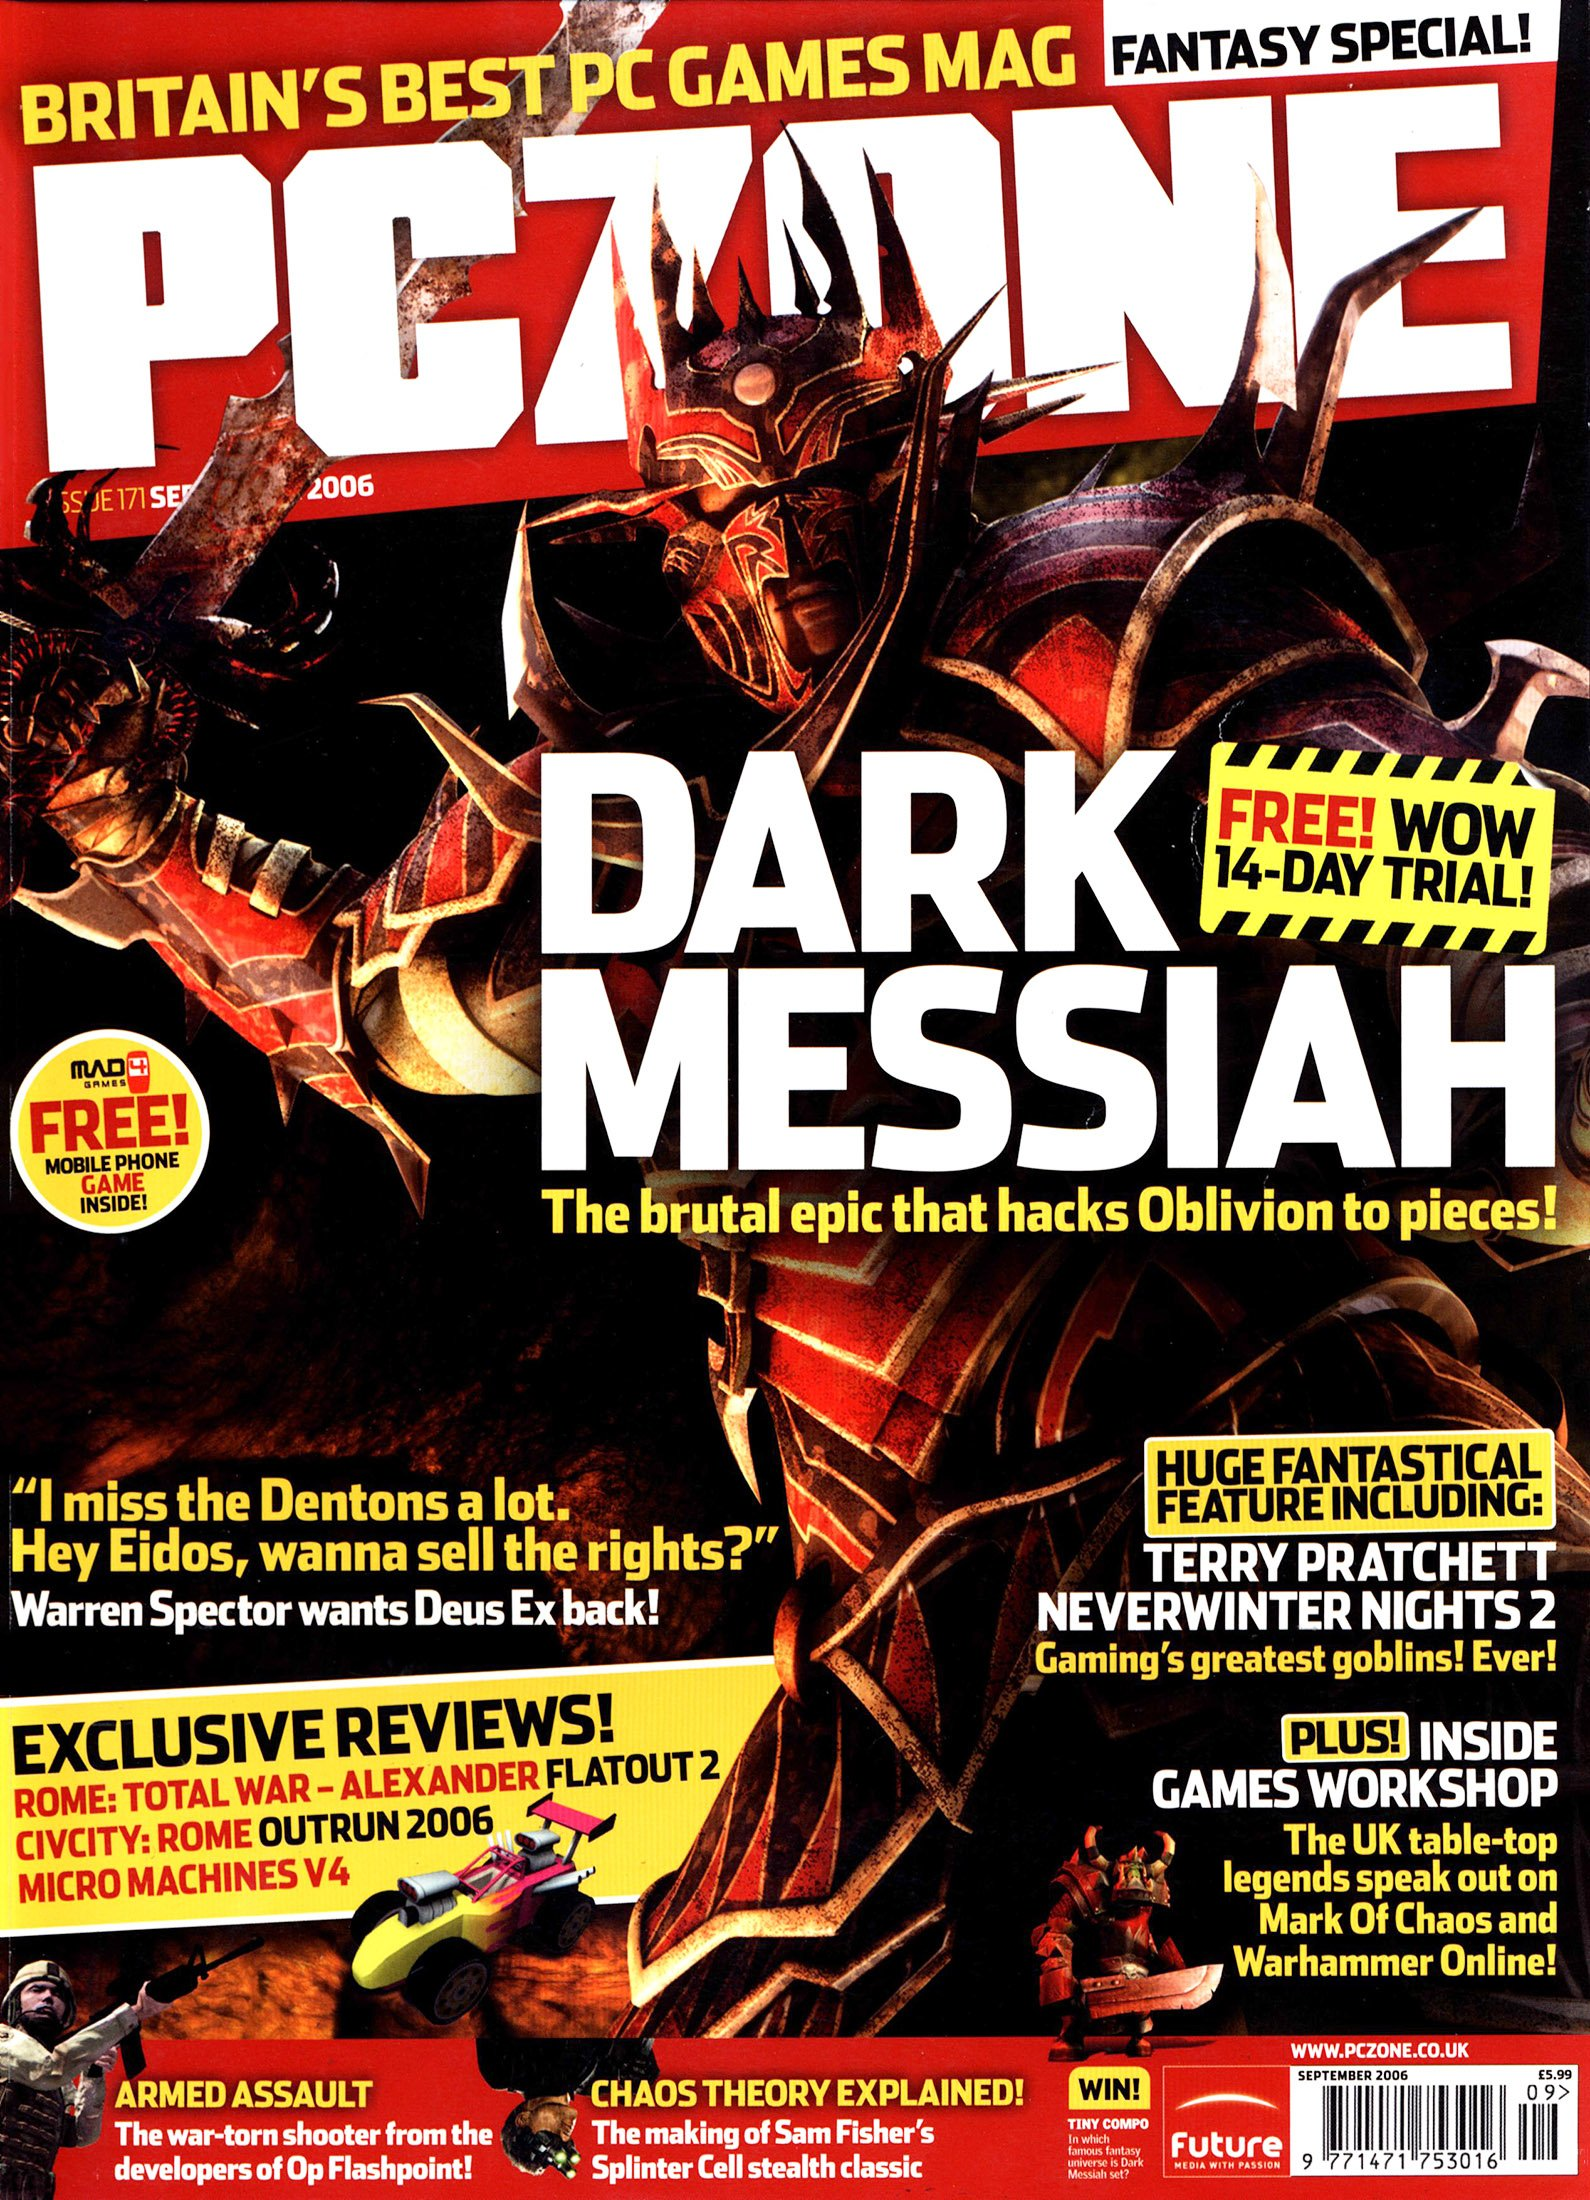 PC Zone Issue 171 (September 2006)